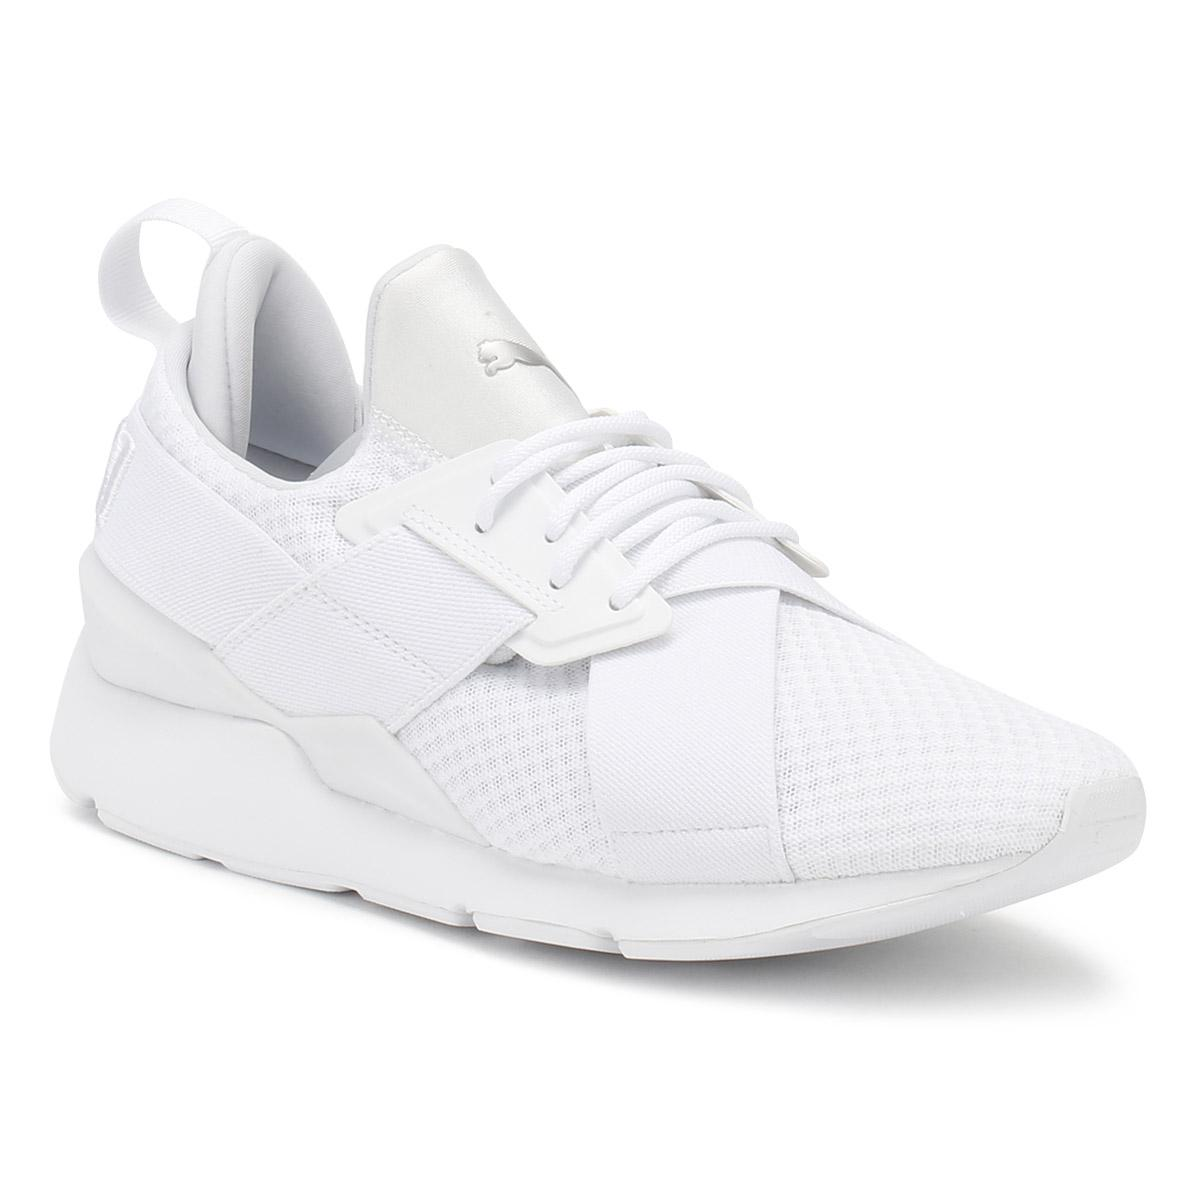 c8b2148d16d PUMA Womens White Muse X-strap Ep Trainers in White - Lyst